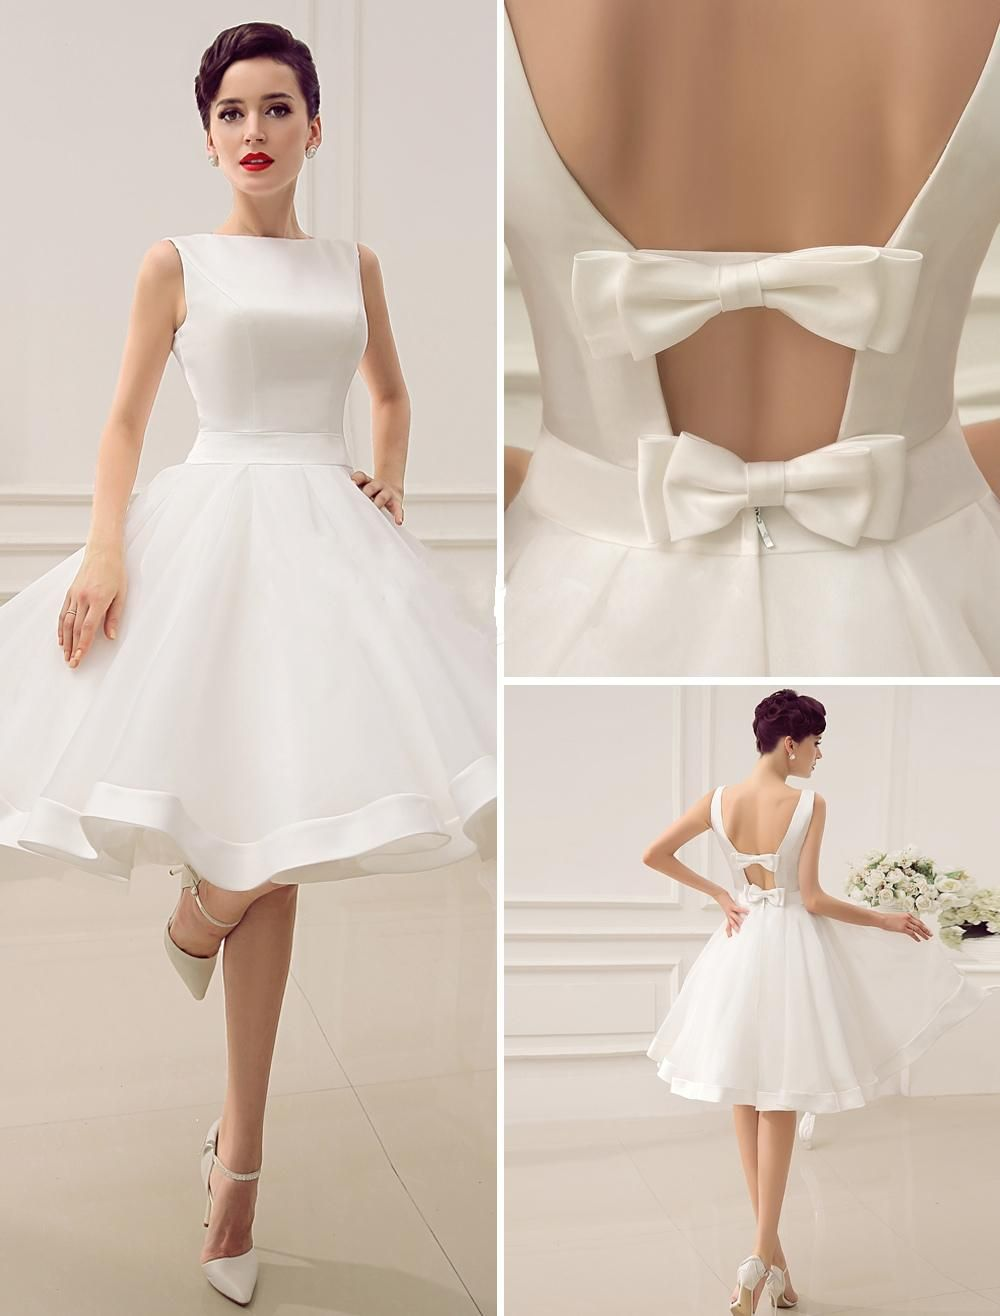 2015 Short Wedding Dresses Vintage Bateau Neckline Deep V Back ...